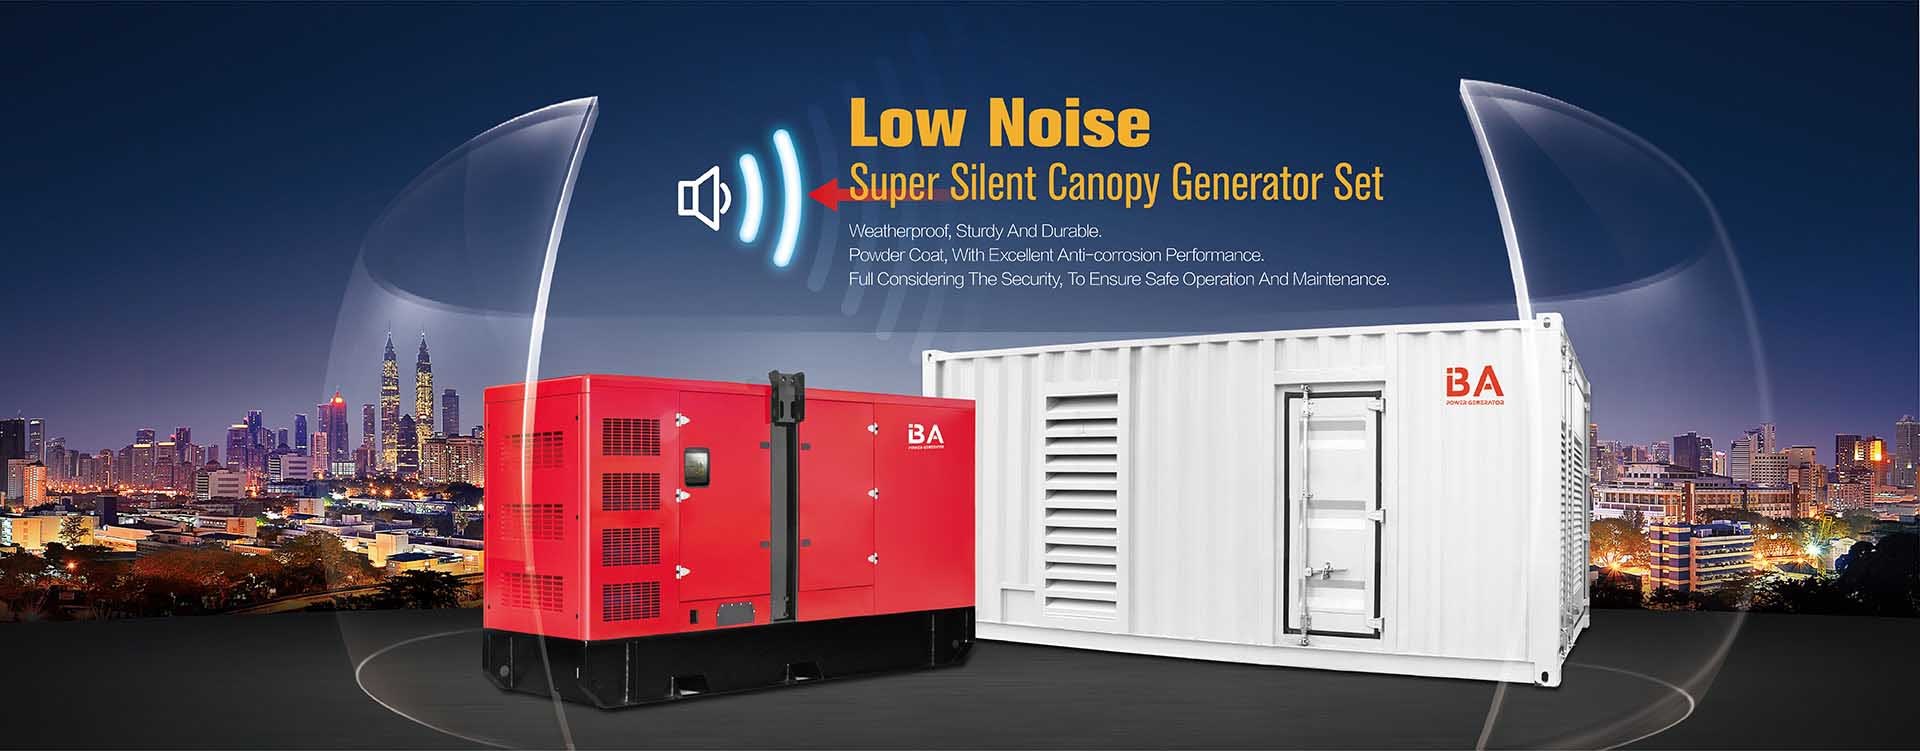 Soundproof Generator Set